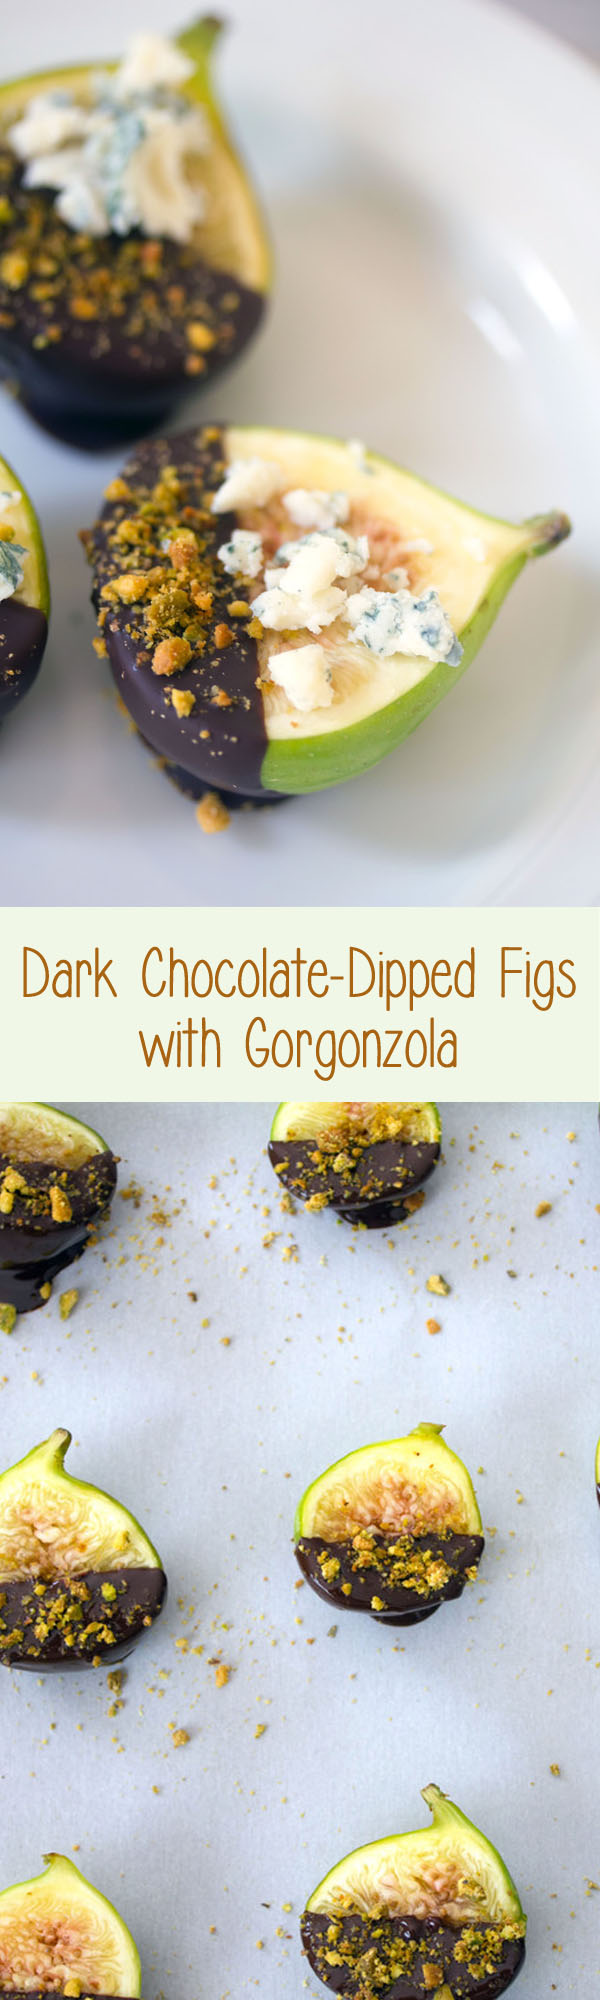 Chocolate Figs with Gorgonzola -- Whether these Dark Chocolate-Dipped Figs with Gorgonzola Cheese are served as an appetizer or dessert, your guests will fall in love. The ingredients are simple, but they all work so well together | wearenotmartha.com #figs #chocolate #gorgonzola #dessert #appetizer